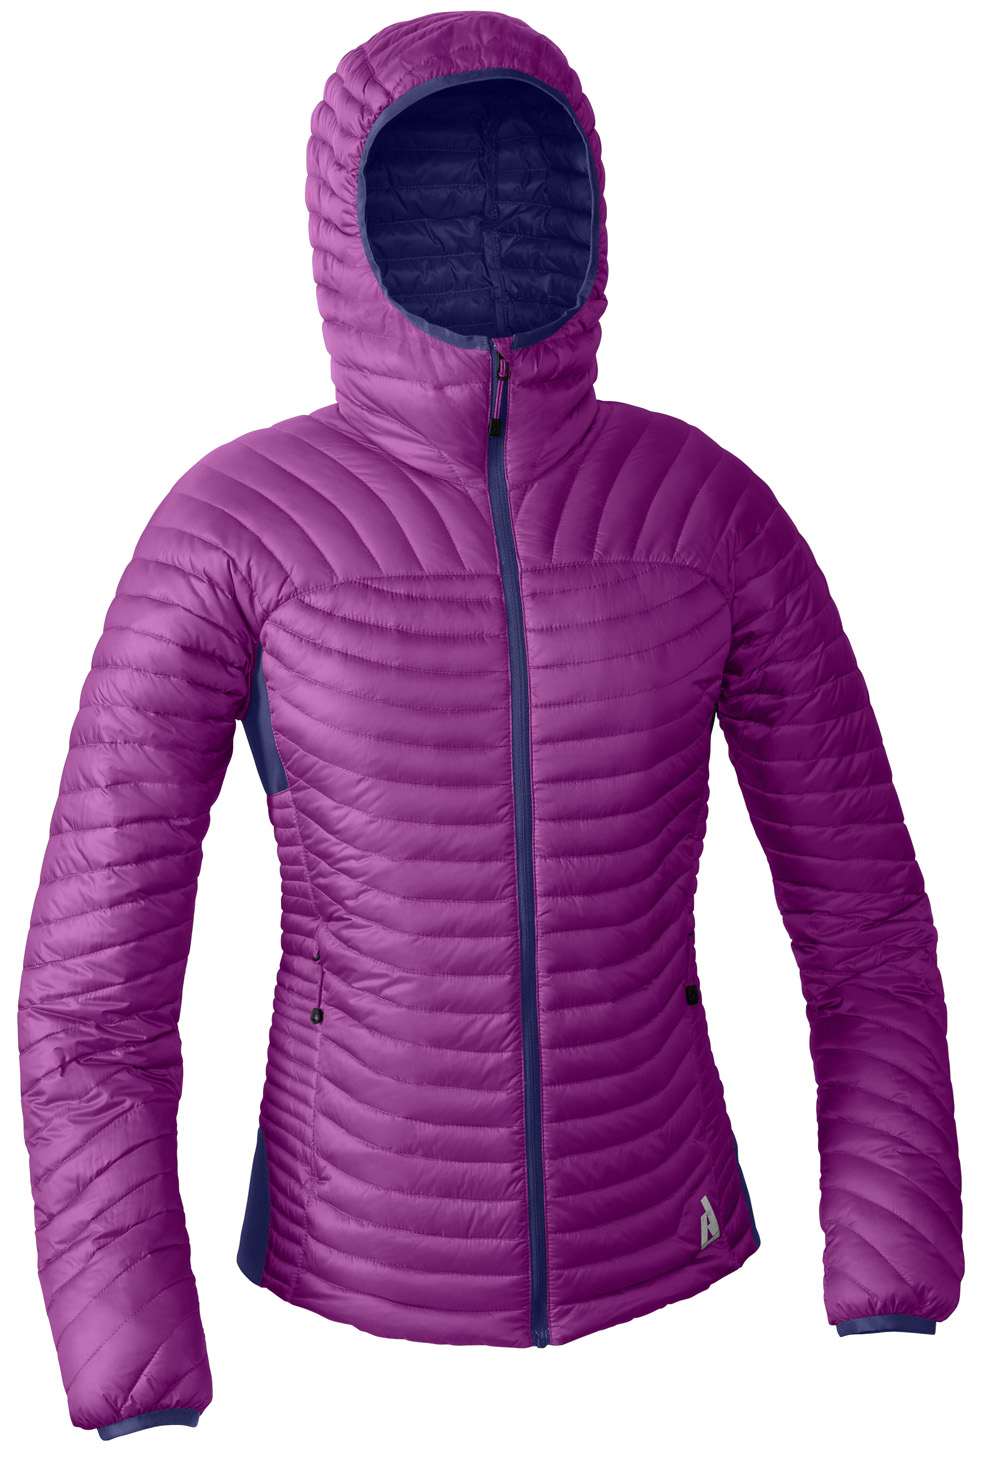 Women's MicroThermT Down Hoodie